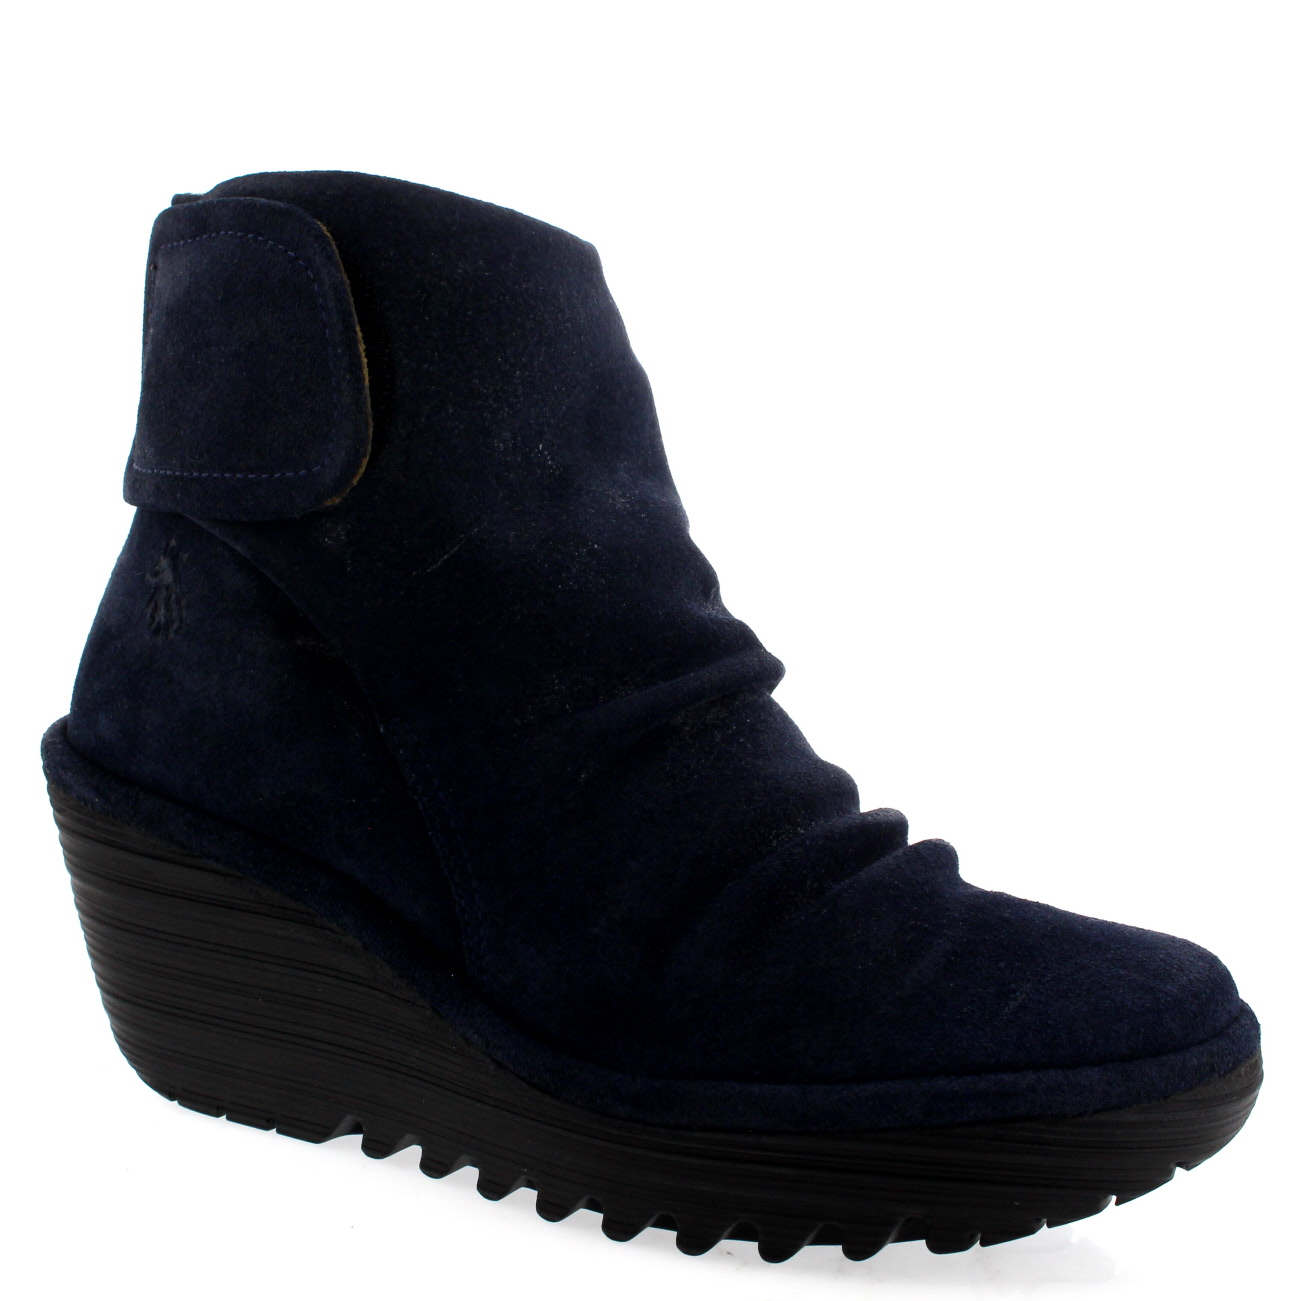 Wedge Women's Boots: Find the latest styles of Shoes from specialisedsteels.tk Your Online Women's Shoes Store! Get 5% in rewards with Club O! Coupon Activated! Forever Aura Womens Double Straps Knee High Boots Winter Boots - Black. SALE. More Options. Quick View. Sale $